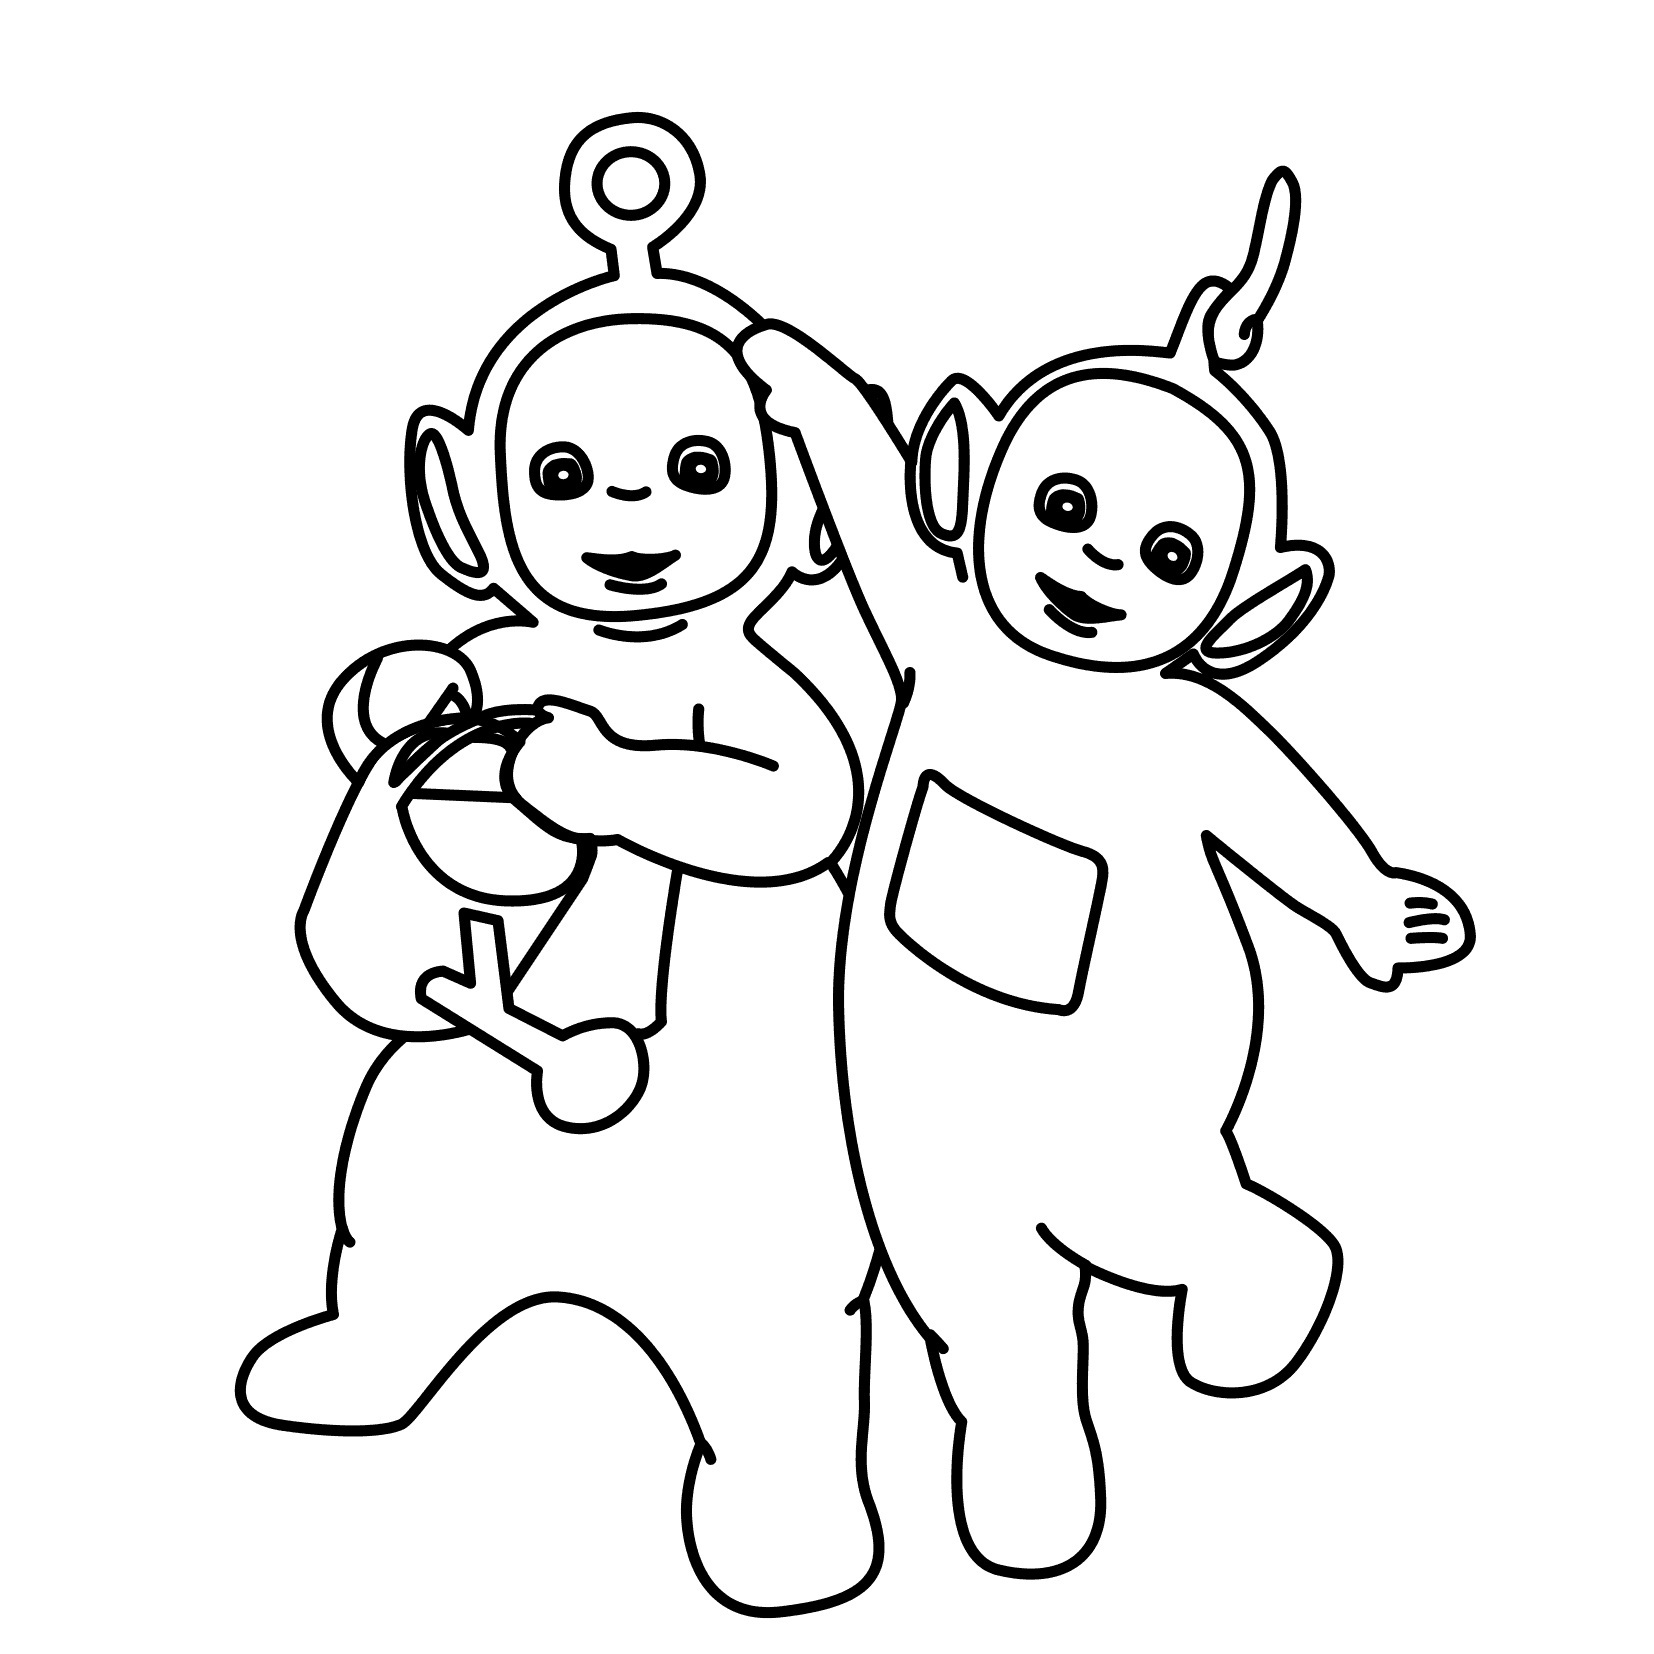 Printable Teletubbies Coloring Pages | Coloring Me